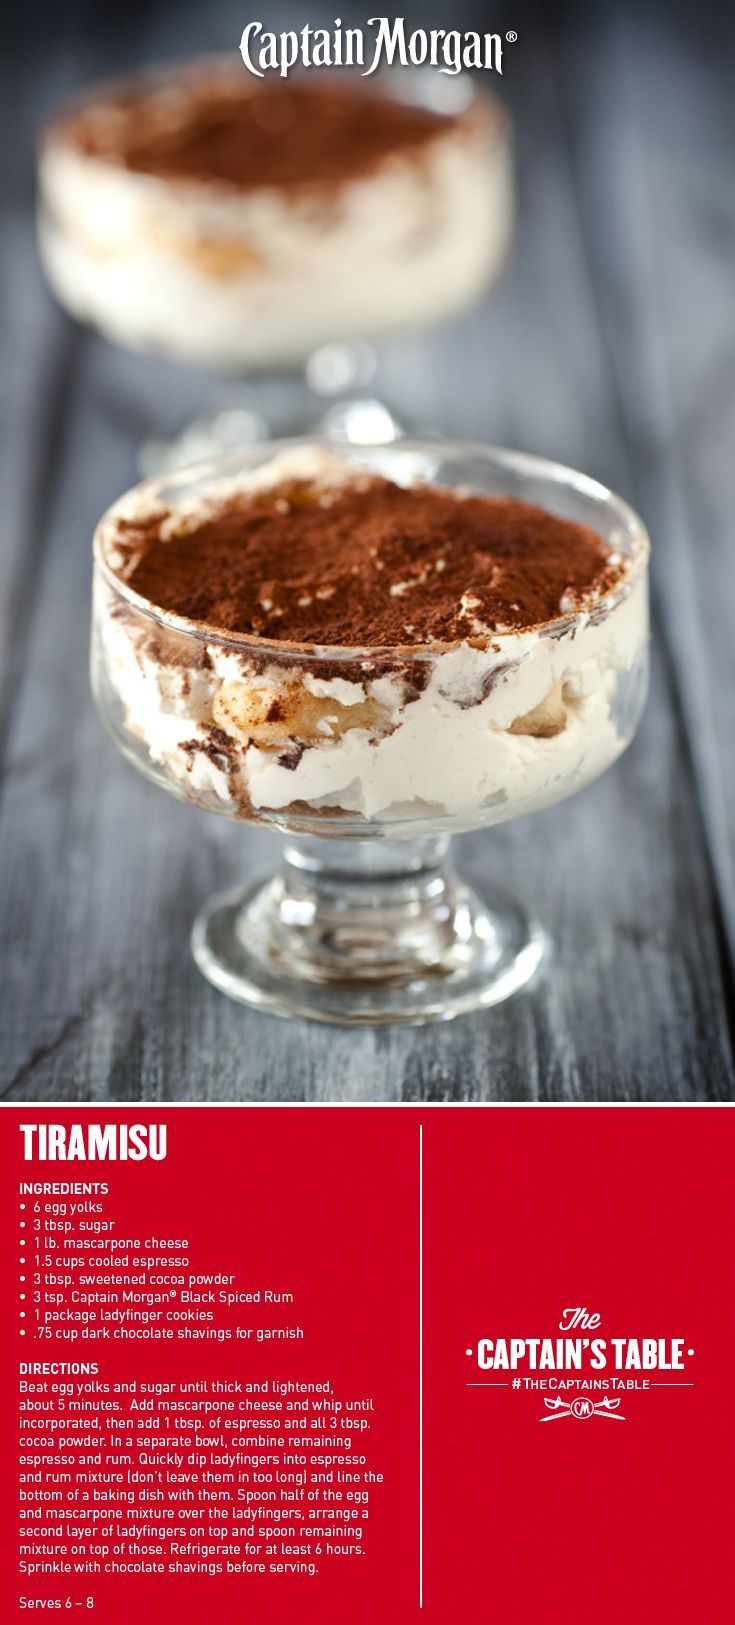 Dreaming of a trip to Italy? One bite of this sophisticated dessert will take you there! #Captain #Morgan #rum #tiramisu #recipe #CaptainsTable